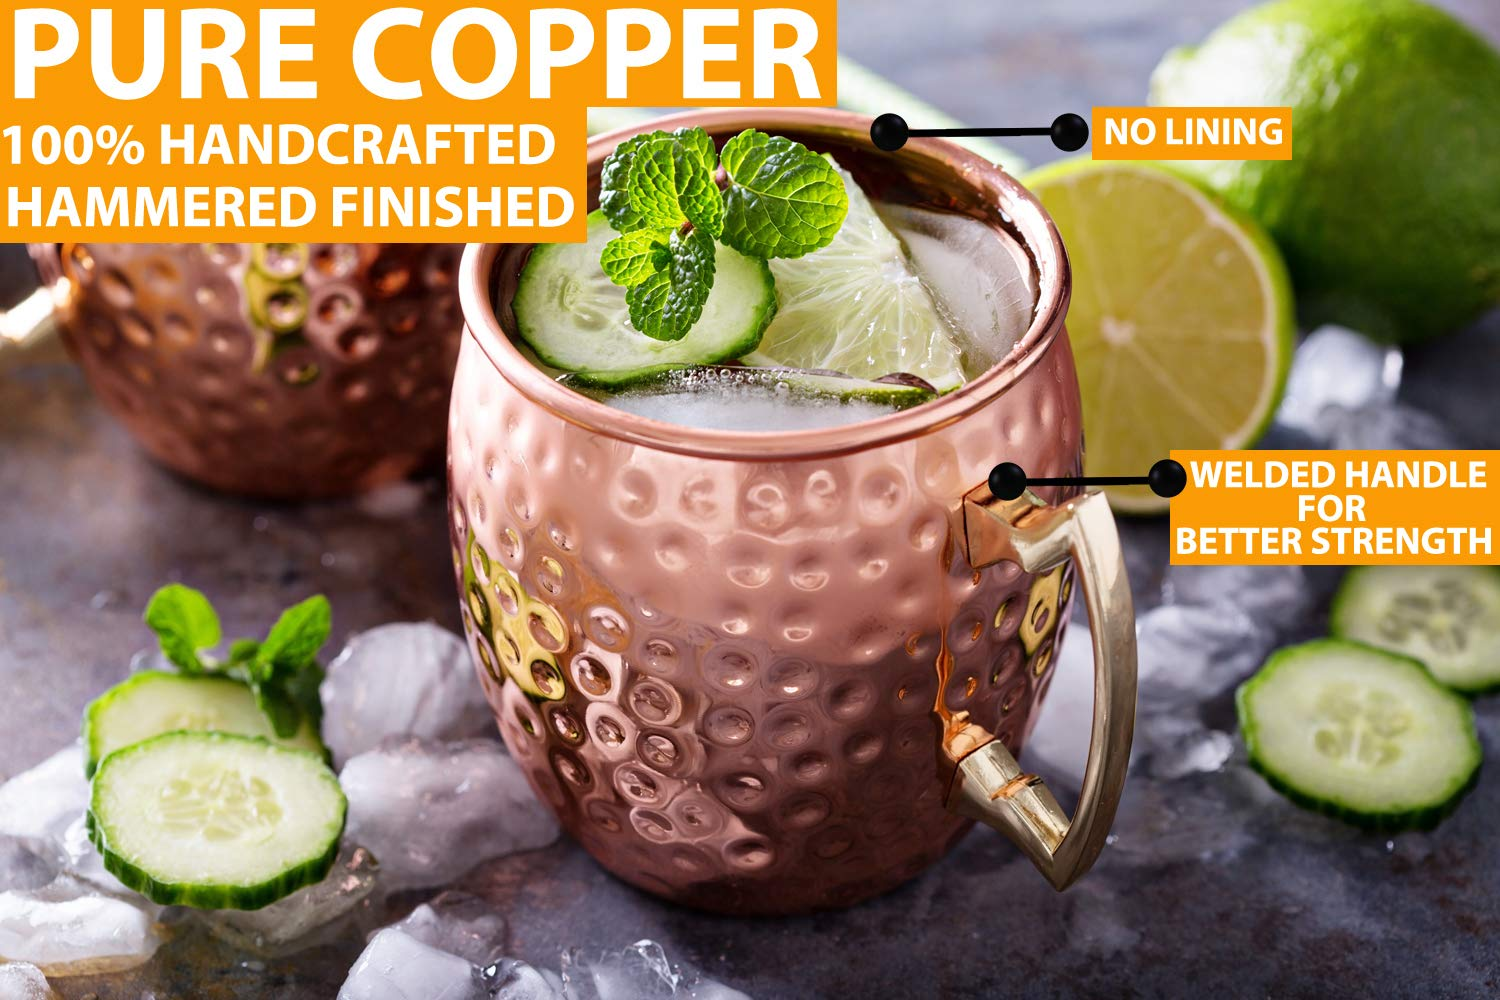 Moscow Mule Copper Mugs - Set of 4-100% HANDCRAFTED - Food Safe Pure Solid Copper Mugs - 16 oz Gift Set with BONUS: Highest Quality Cocktail Copper Straws and Jigger! (Copper) by Gold Armour (Image #2)